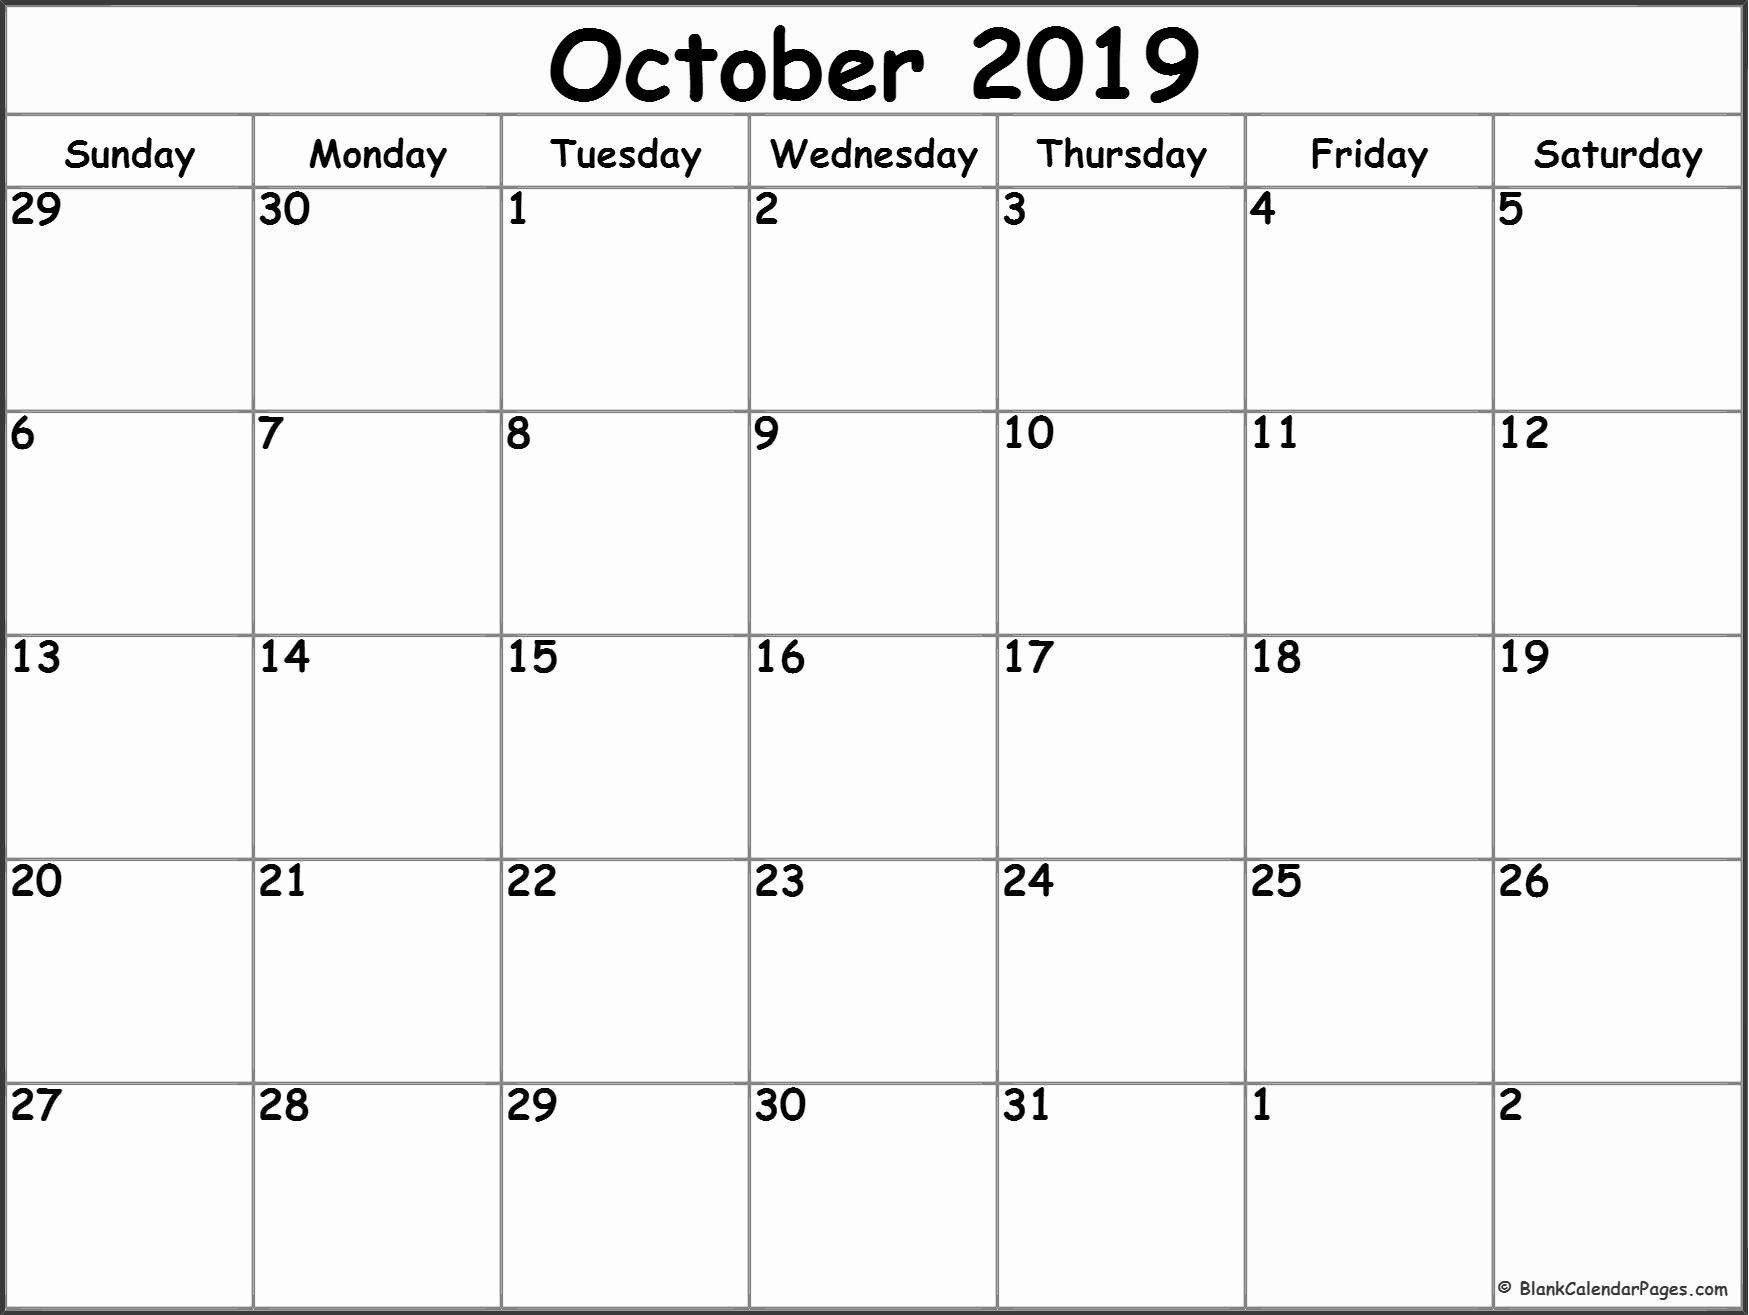 Free Monthly Calendar Template 2019 Luxury October 2019 Blank Calendar Collection